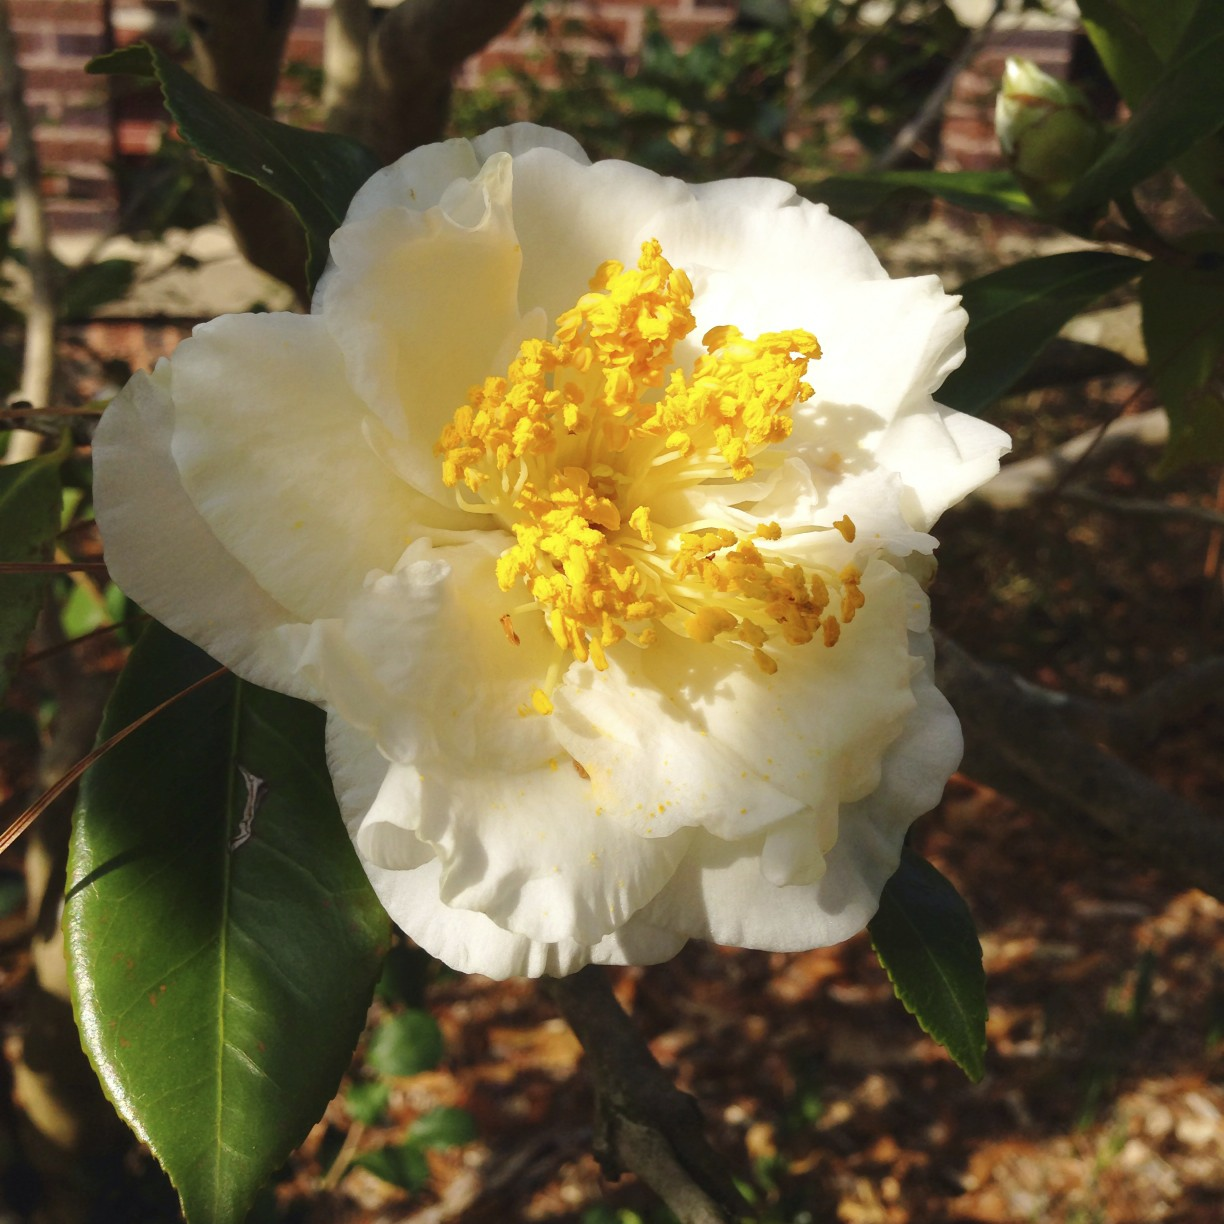 camellias in the Eudora Welty garden